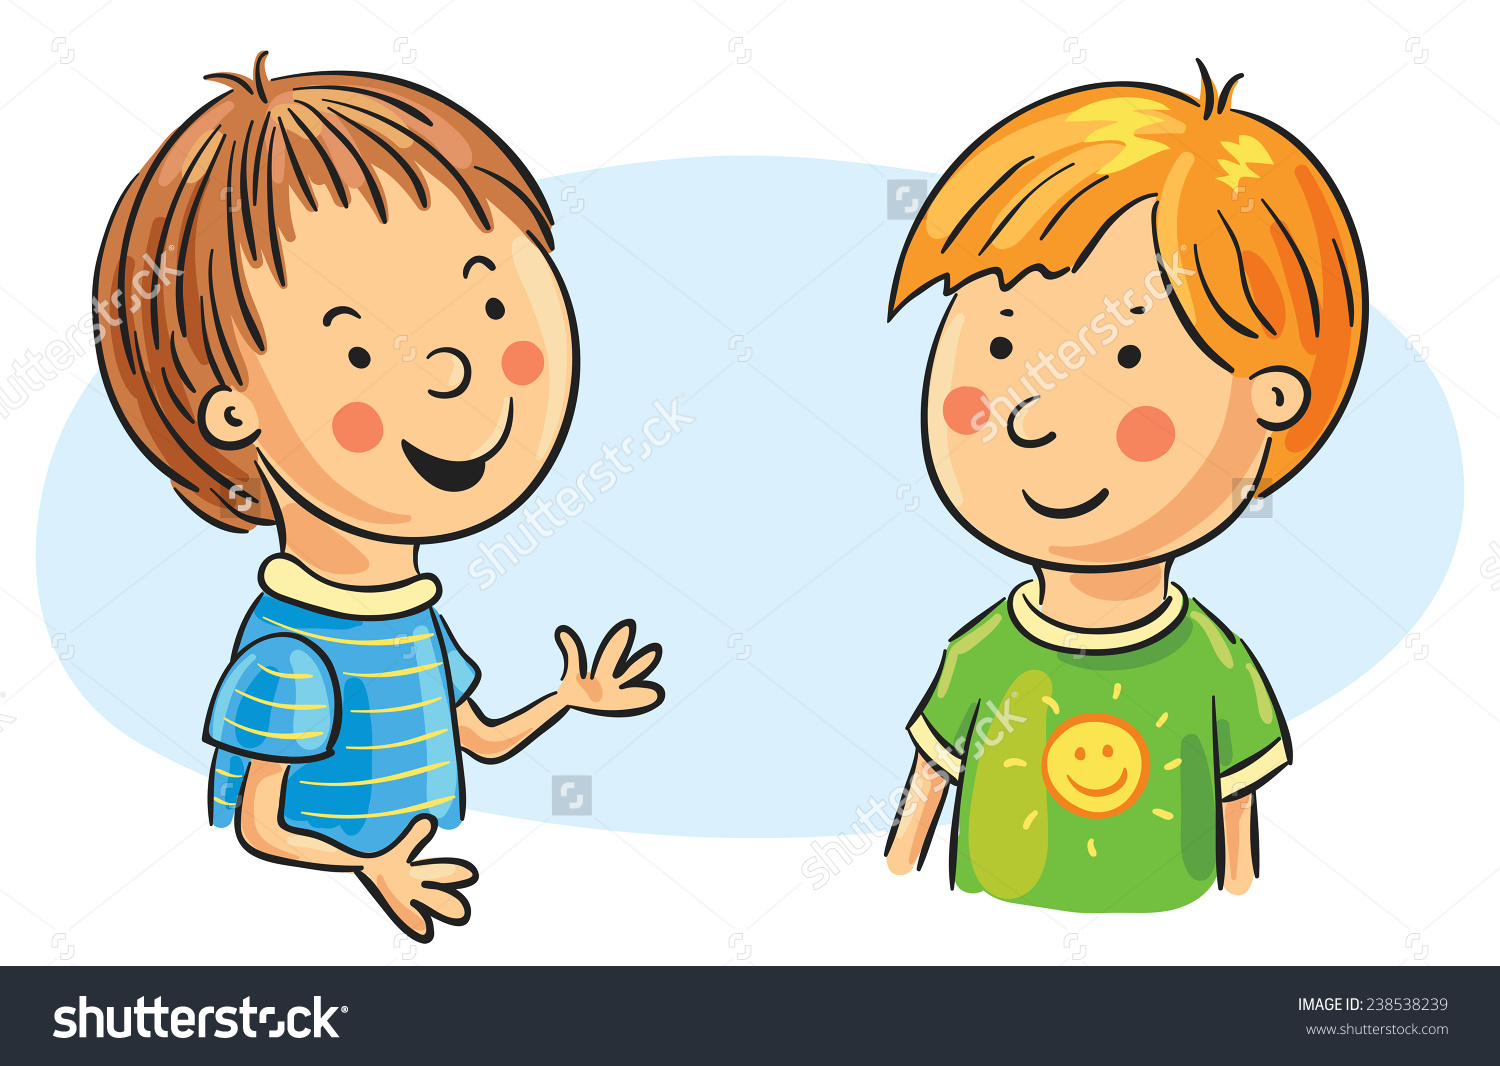 Conversation clipart.  collection of kids